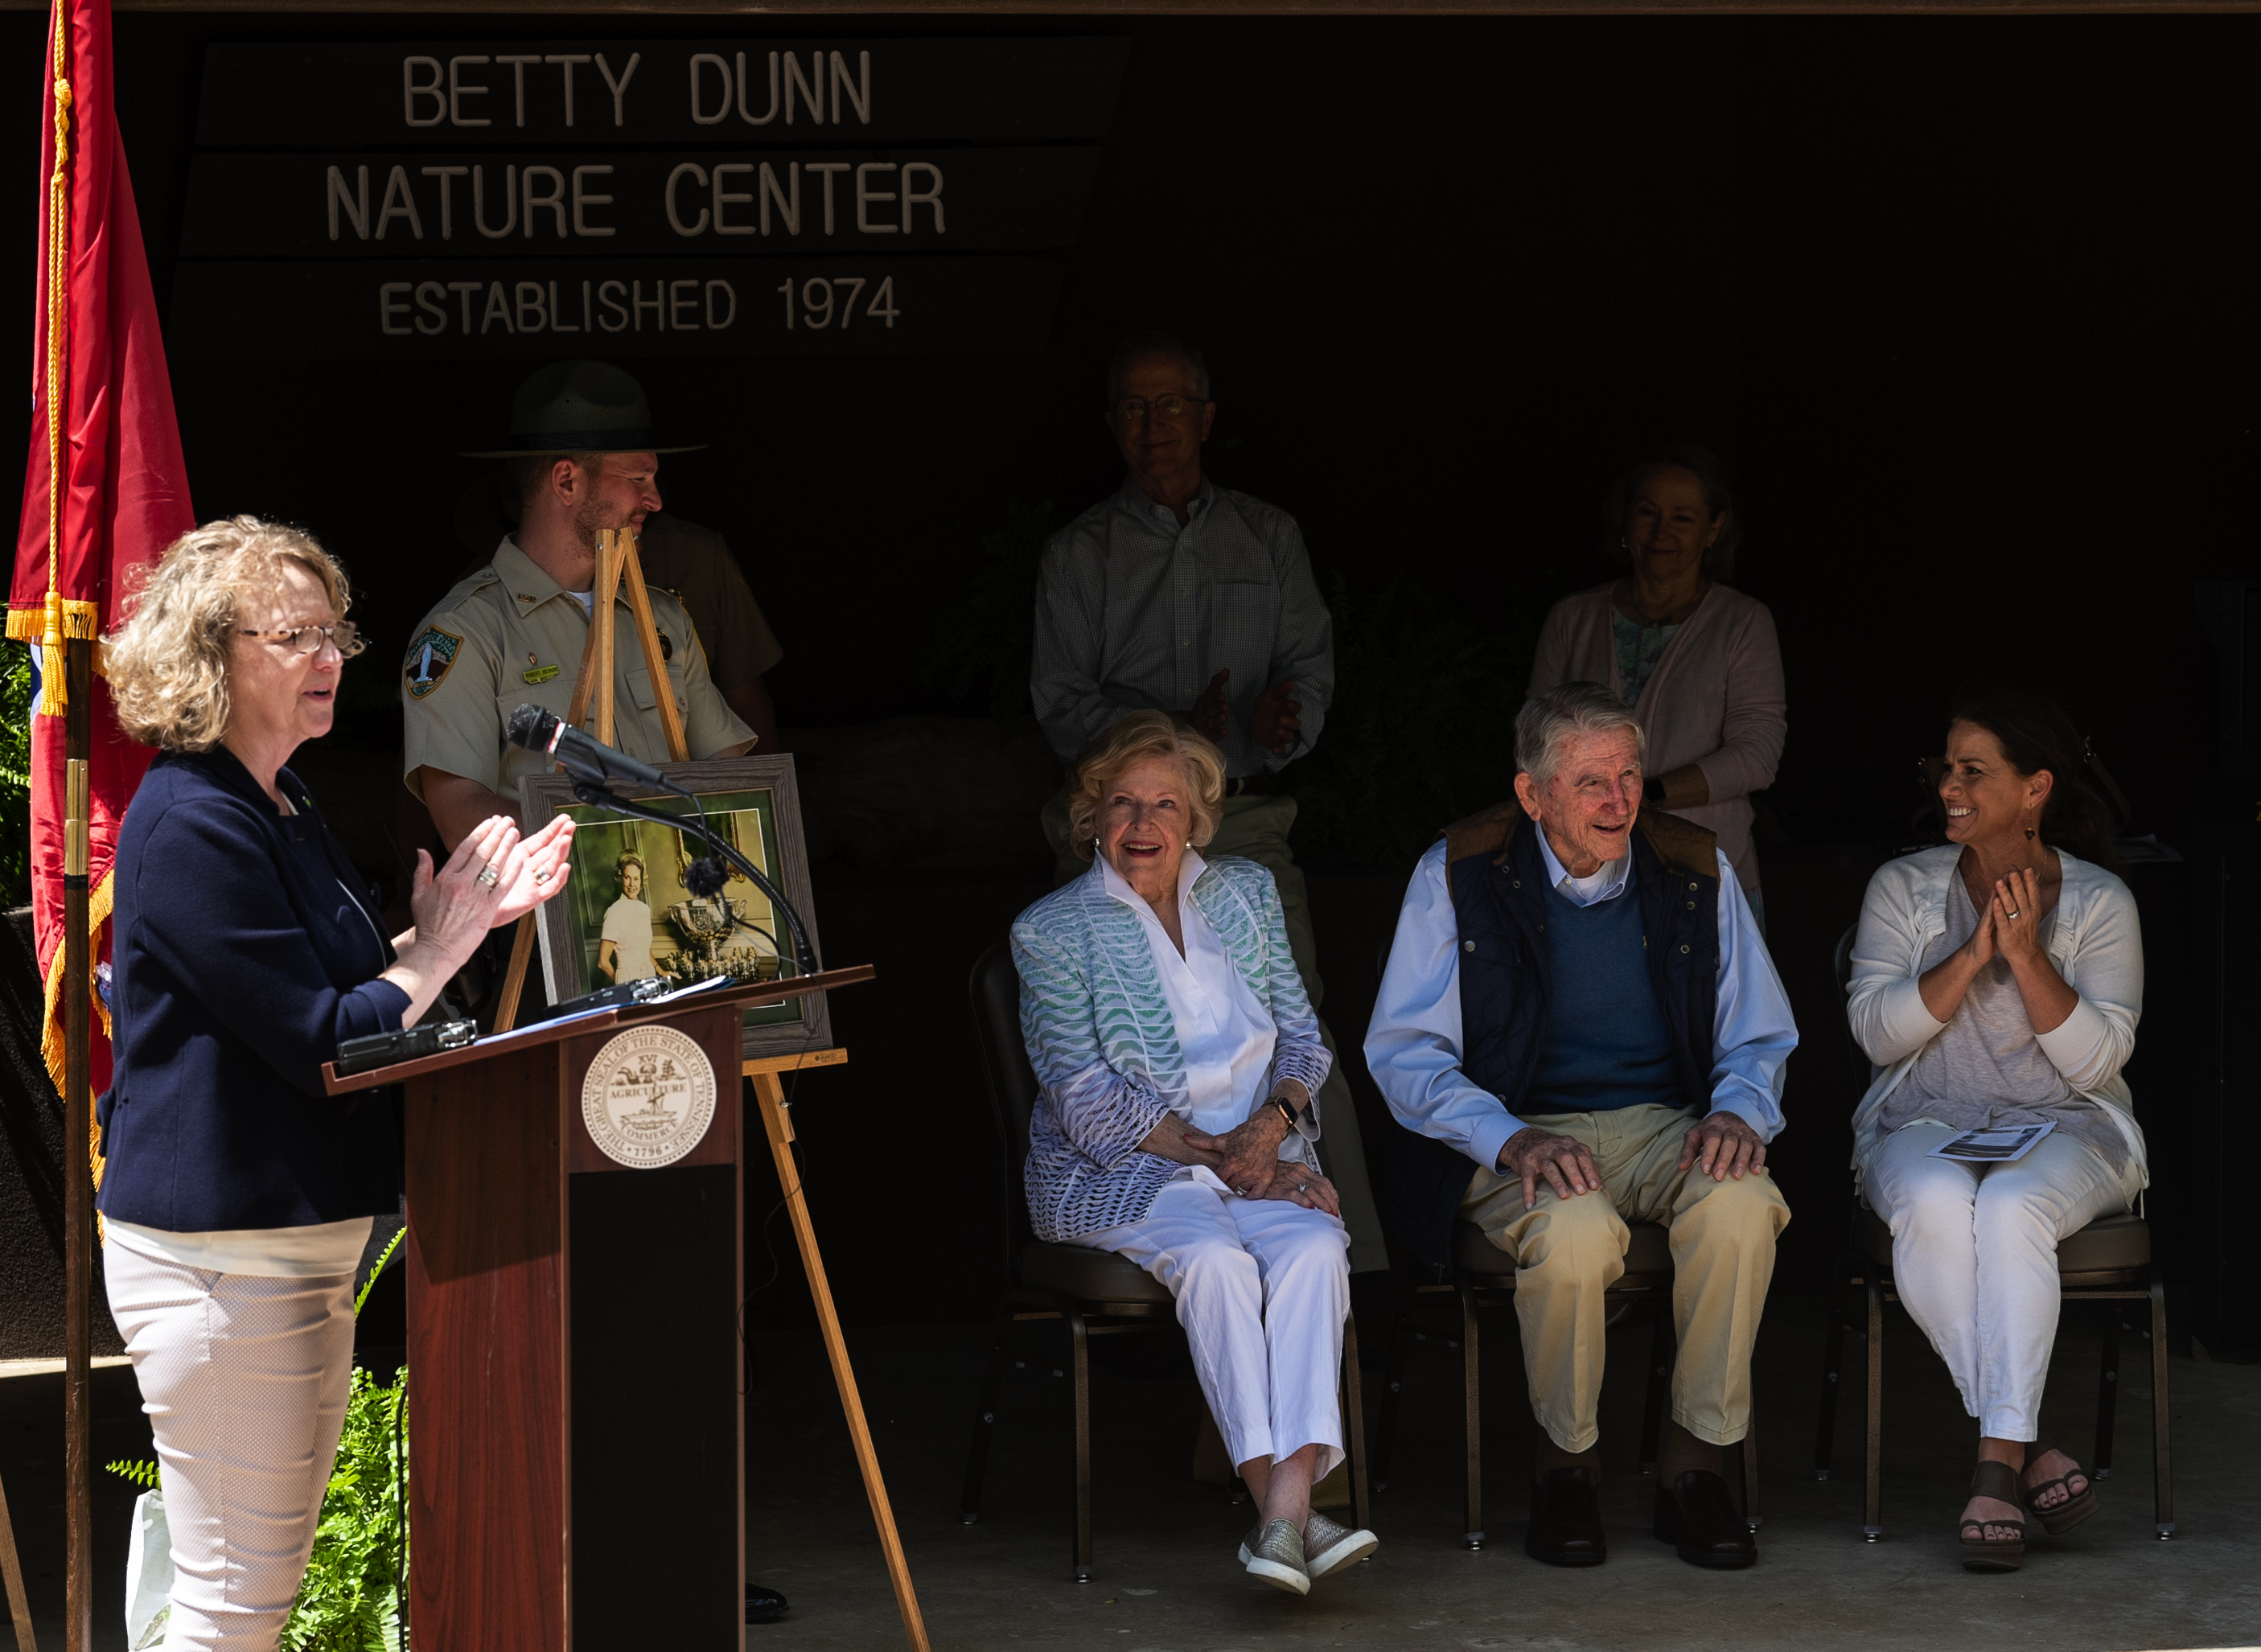 First Lady with Governor and First Lady Dunn at opening of the Betty Dunn Nature Center at Fall Creek Falls